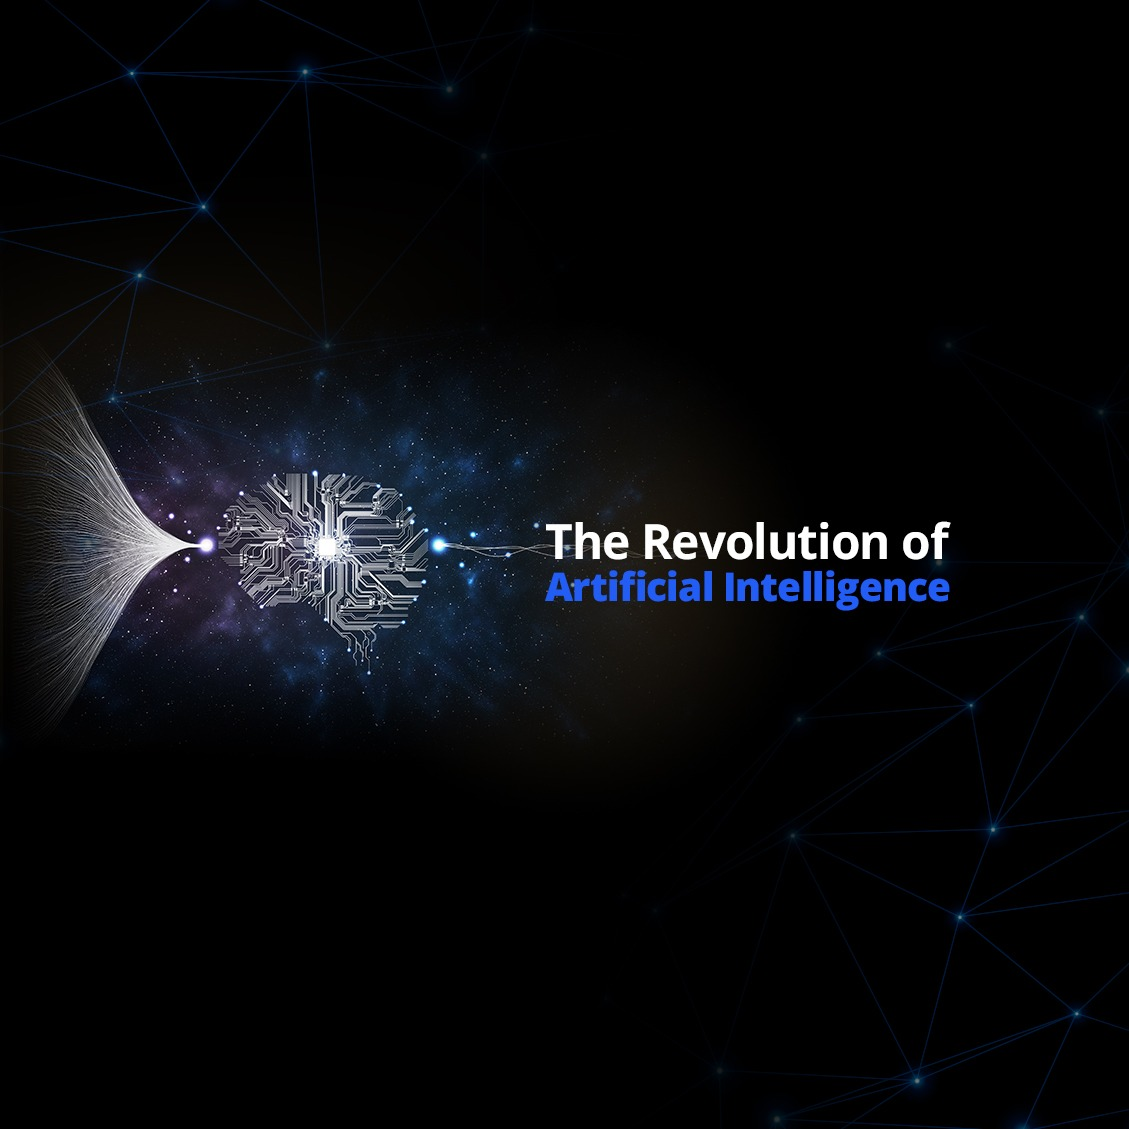 The Revolution of Artificial Intelligence